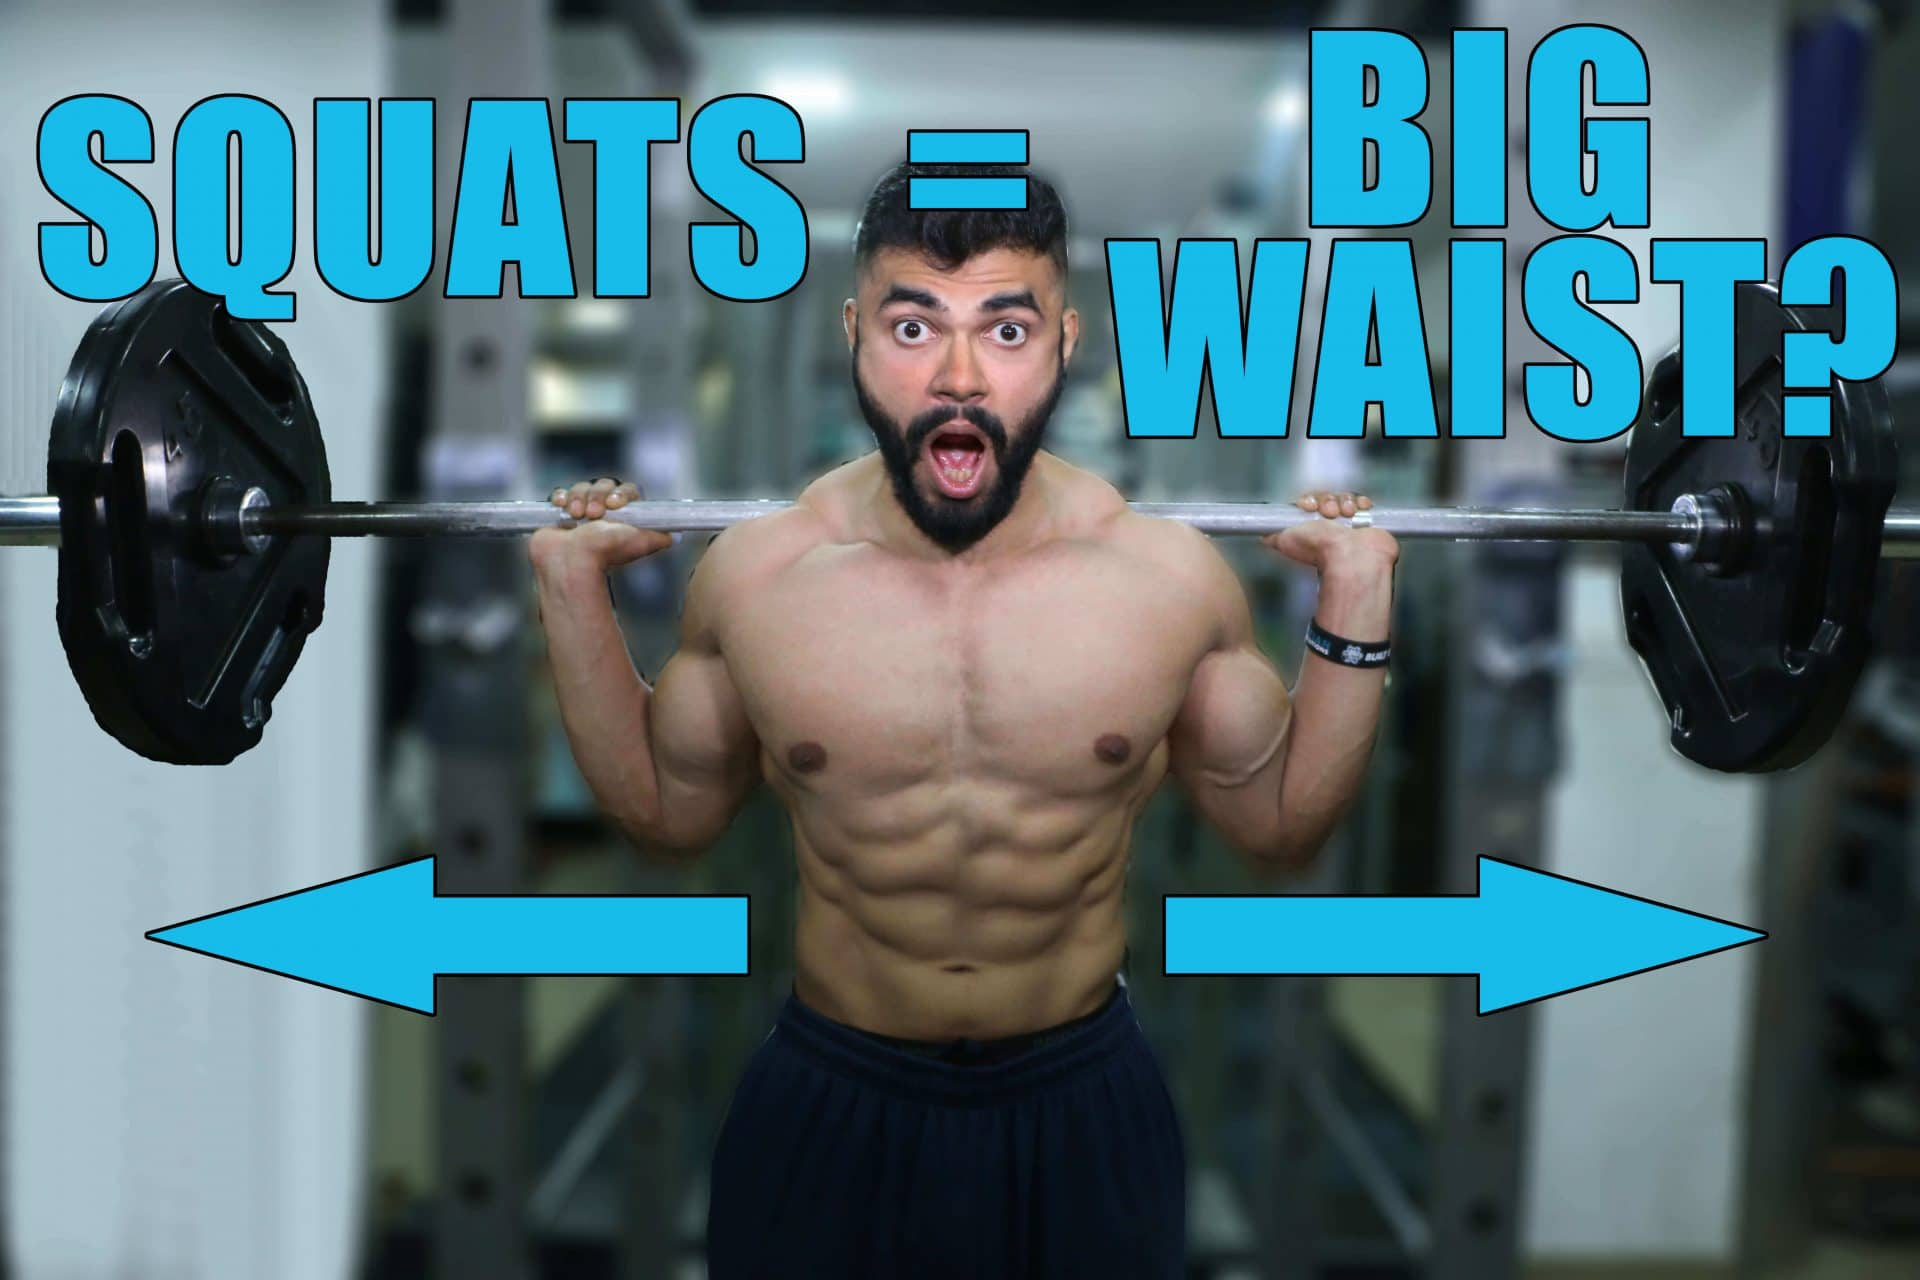 Do Squats & Deadlifts make the Waist THICKER?